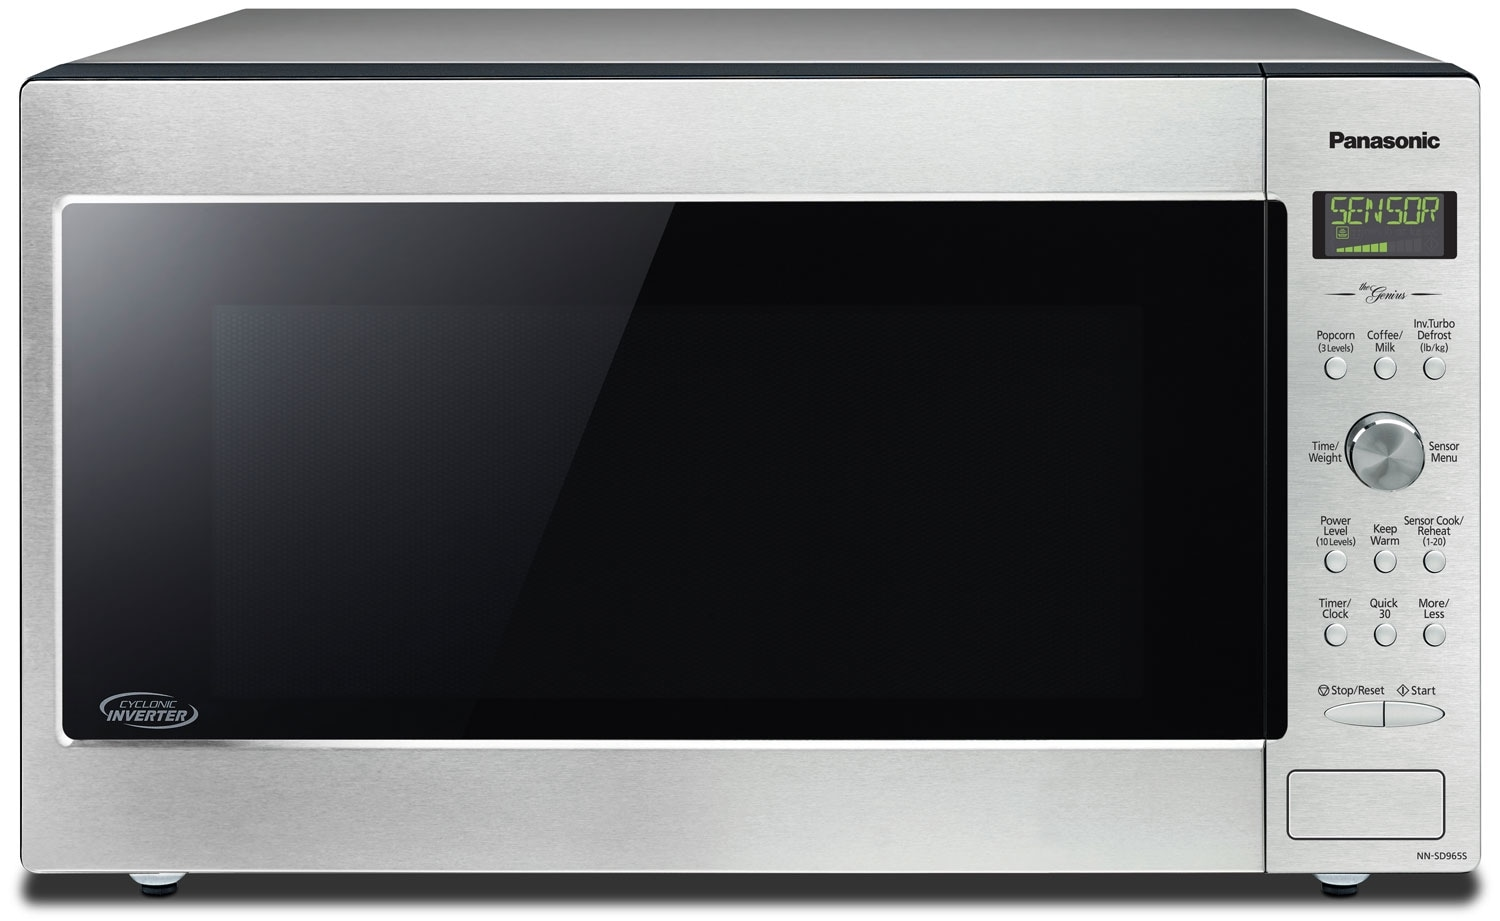 Cooking Products - Panasonic® 2.2 Cu. Ft. Digital Countertop Microwave - Stainless Steel